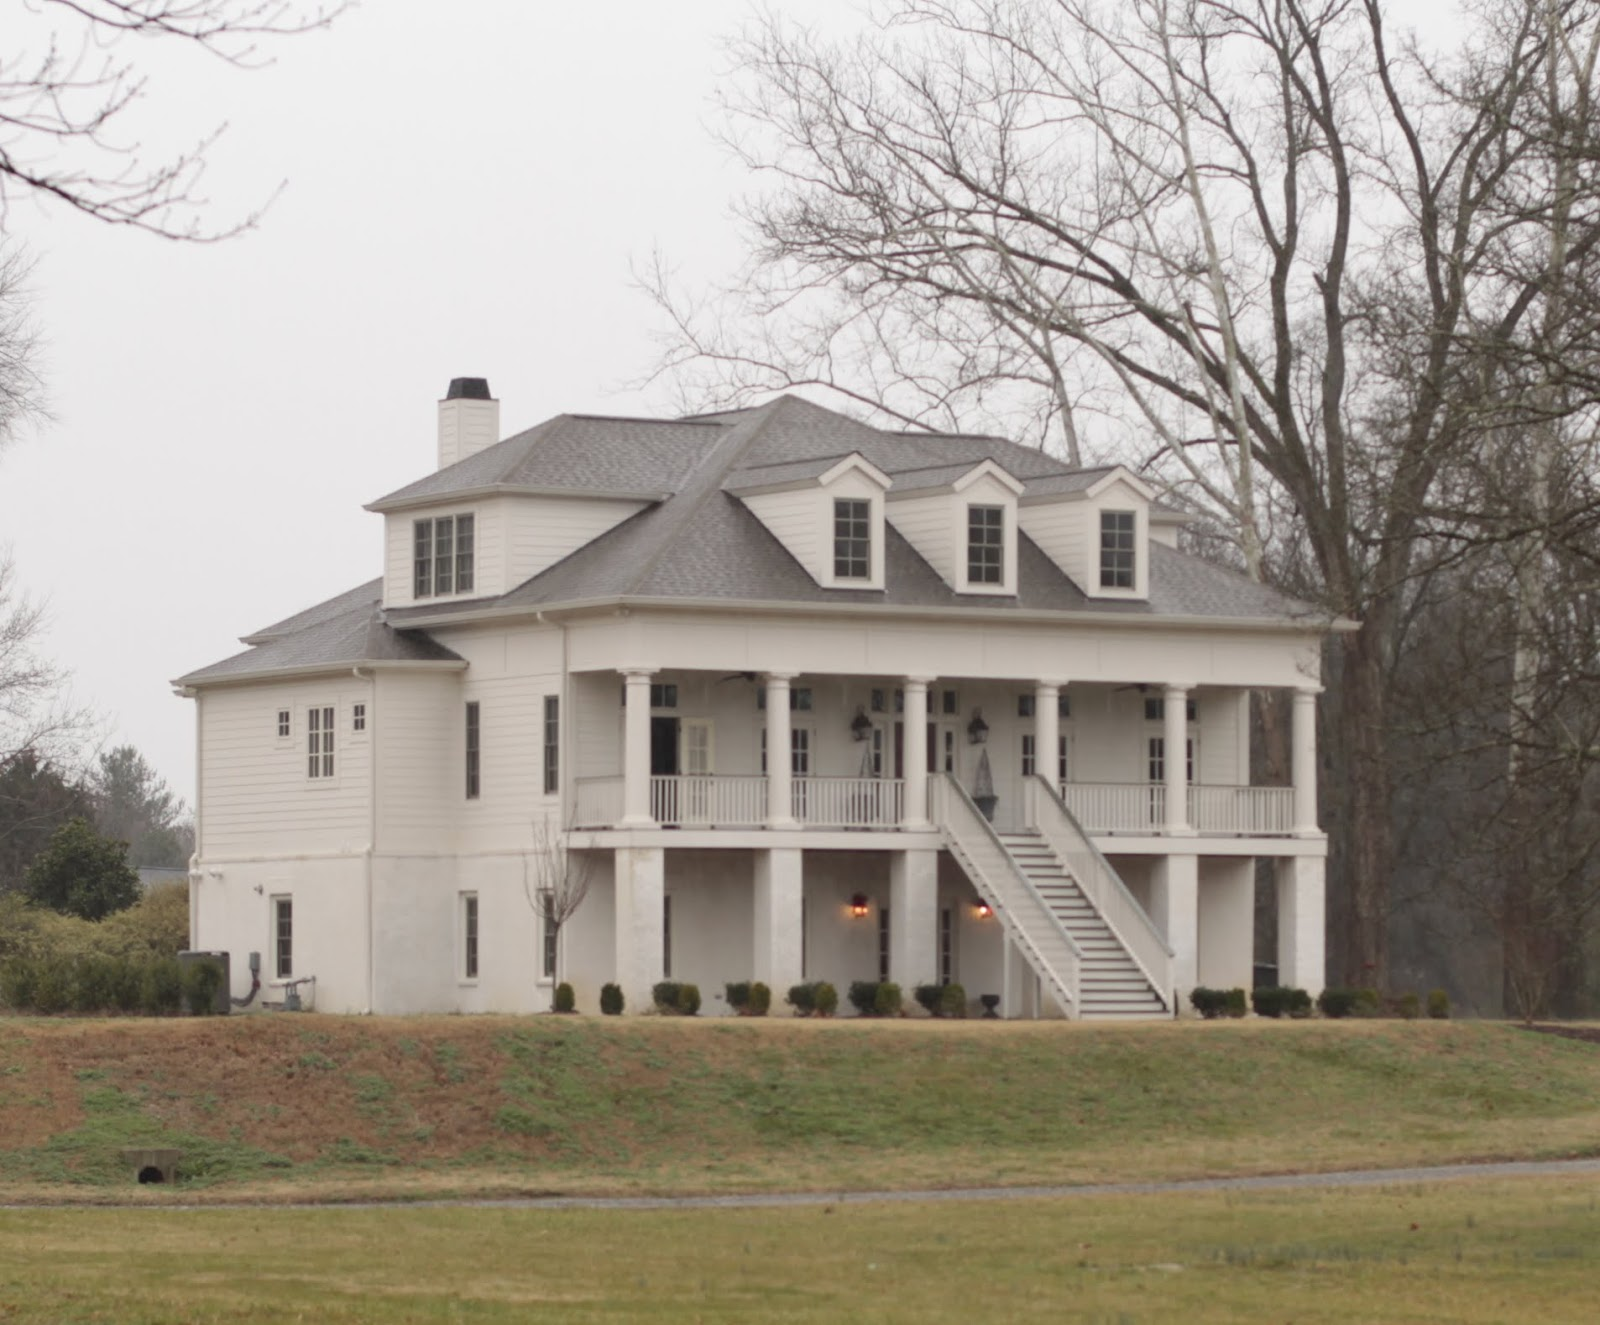 These Homes Were Affected By The Civil War